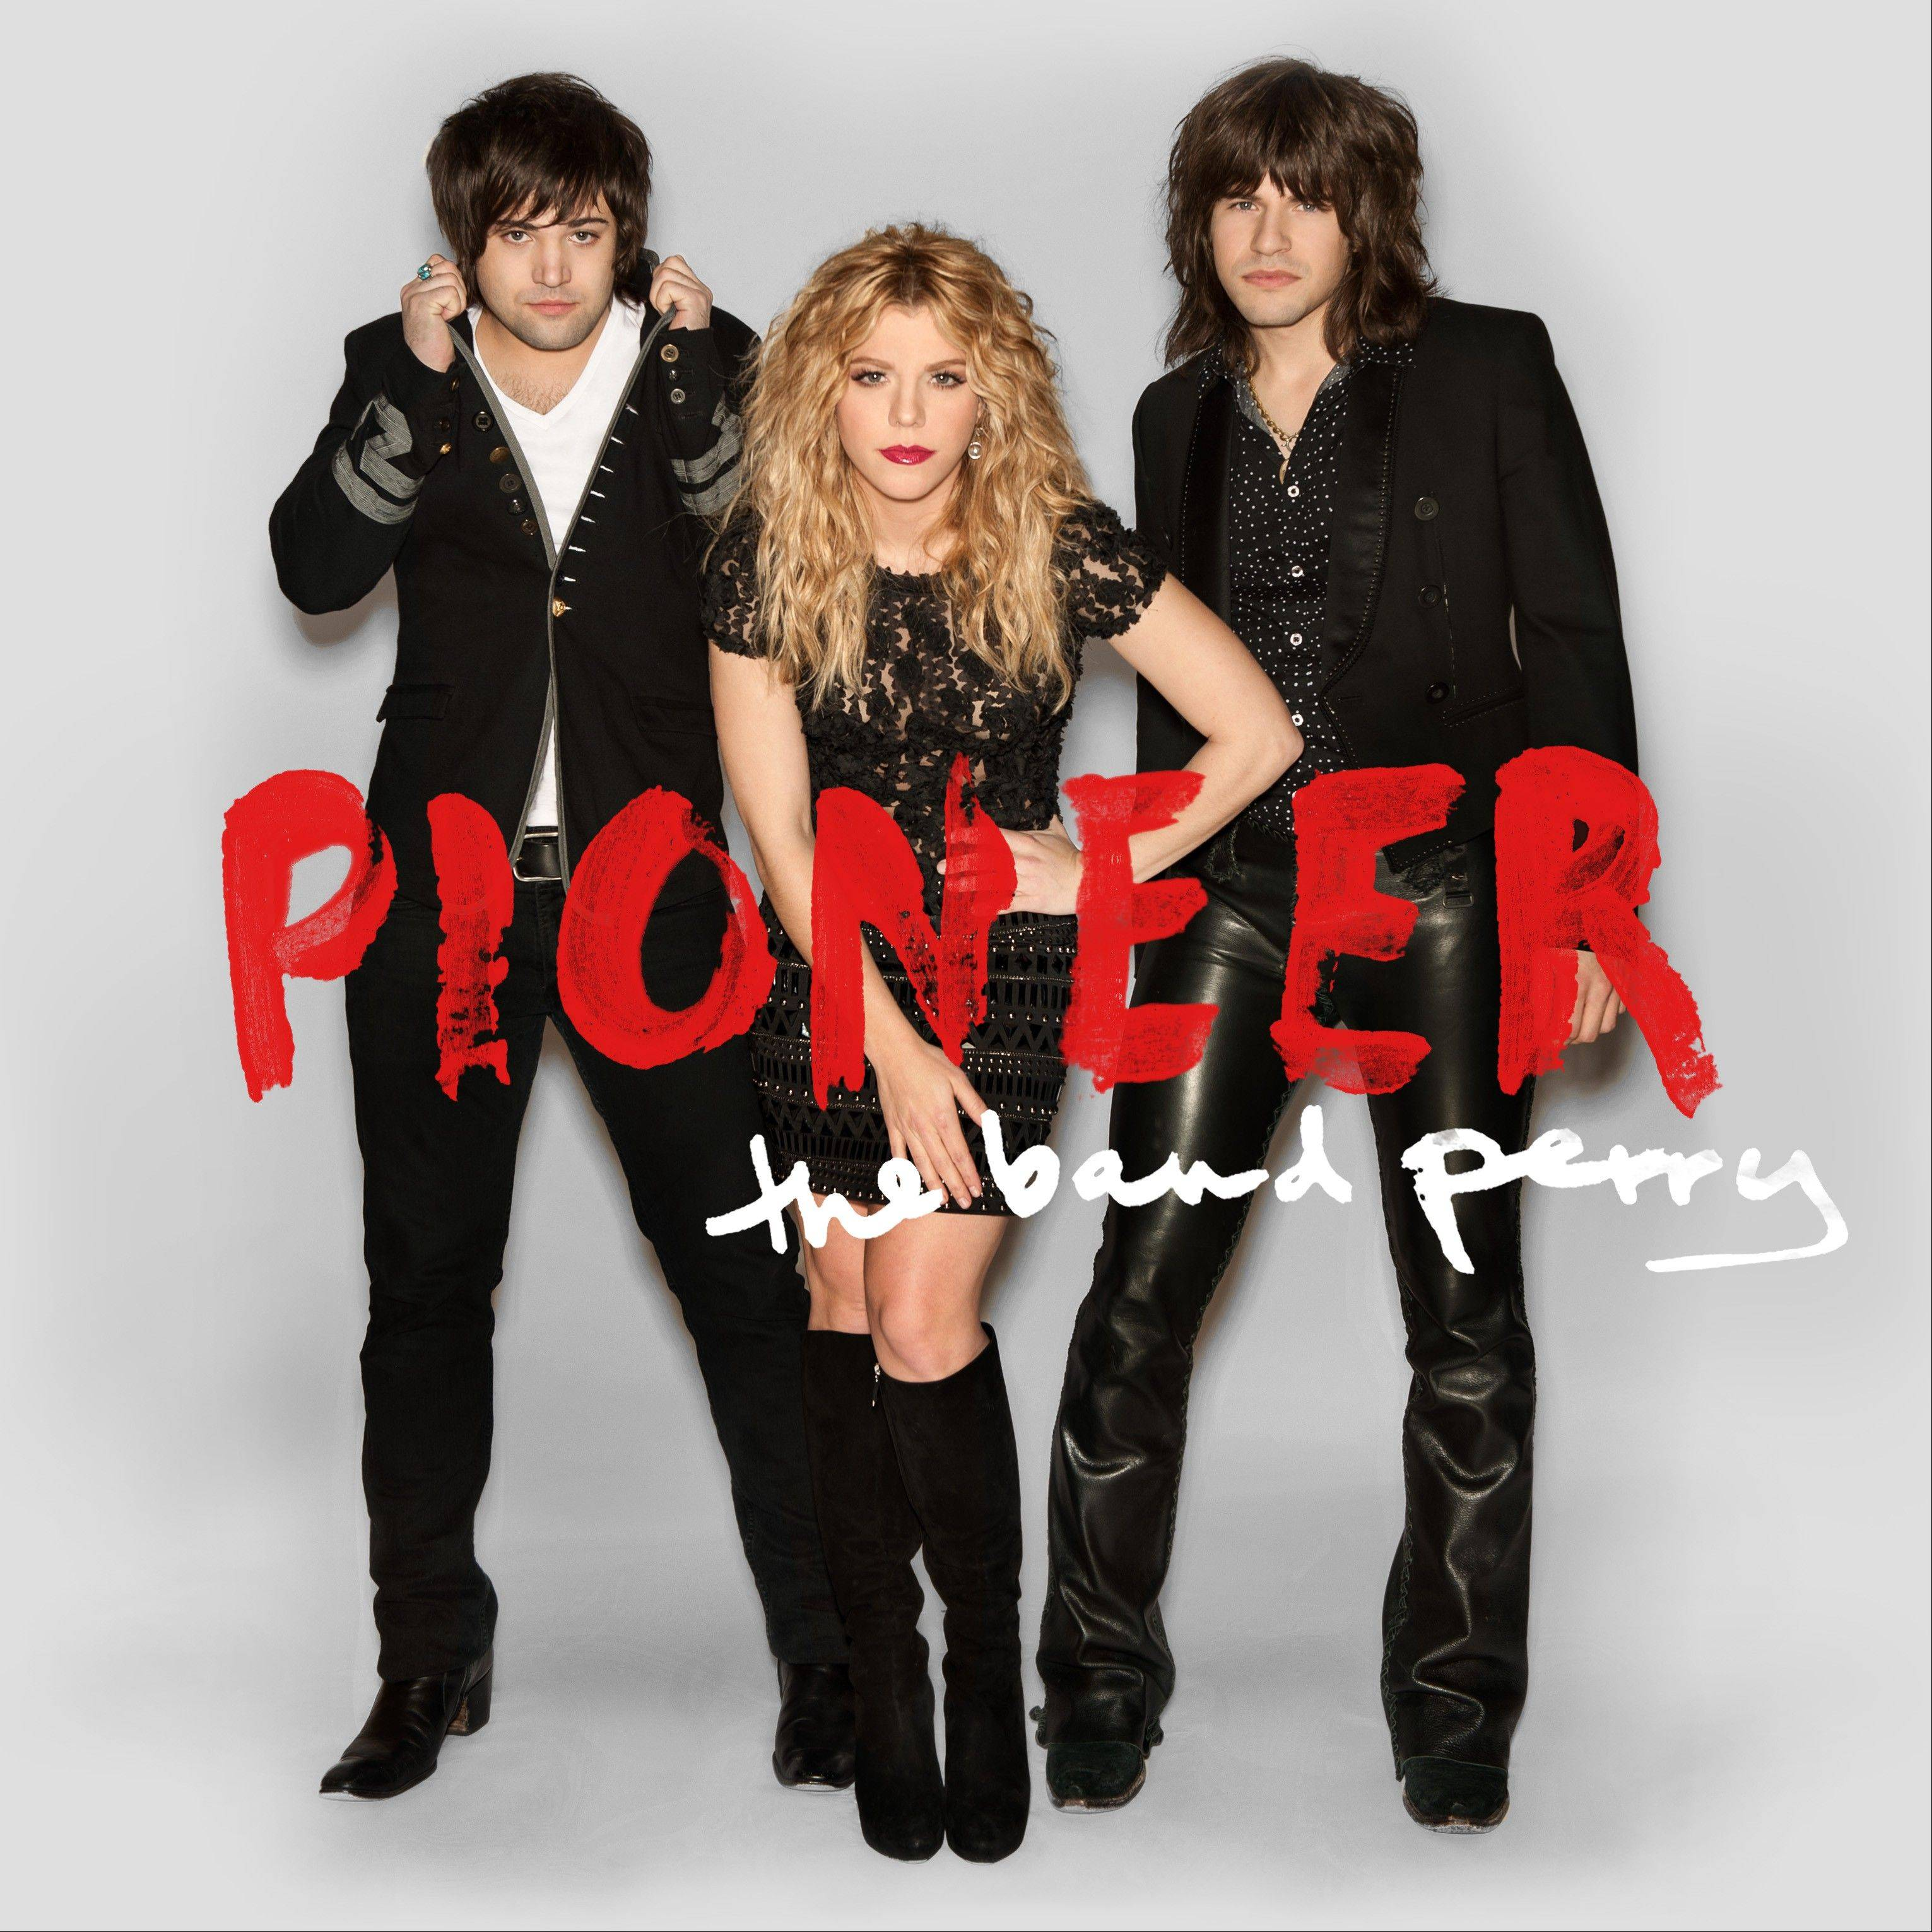 """Pioneer"" by The Band Perry"